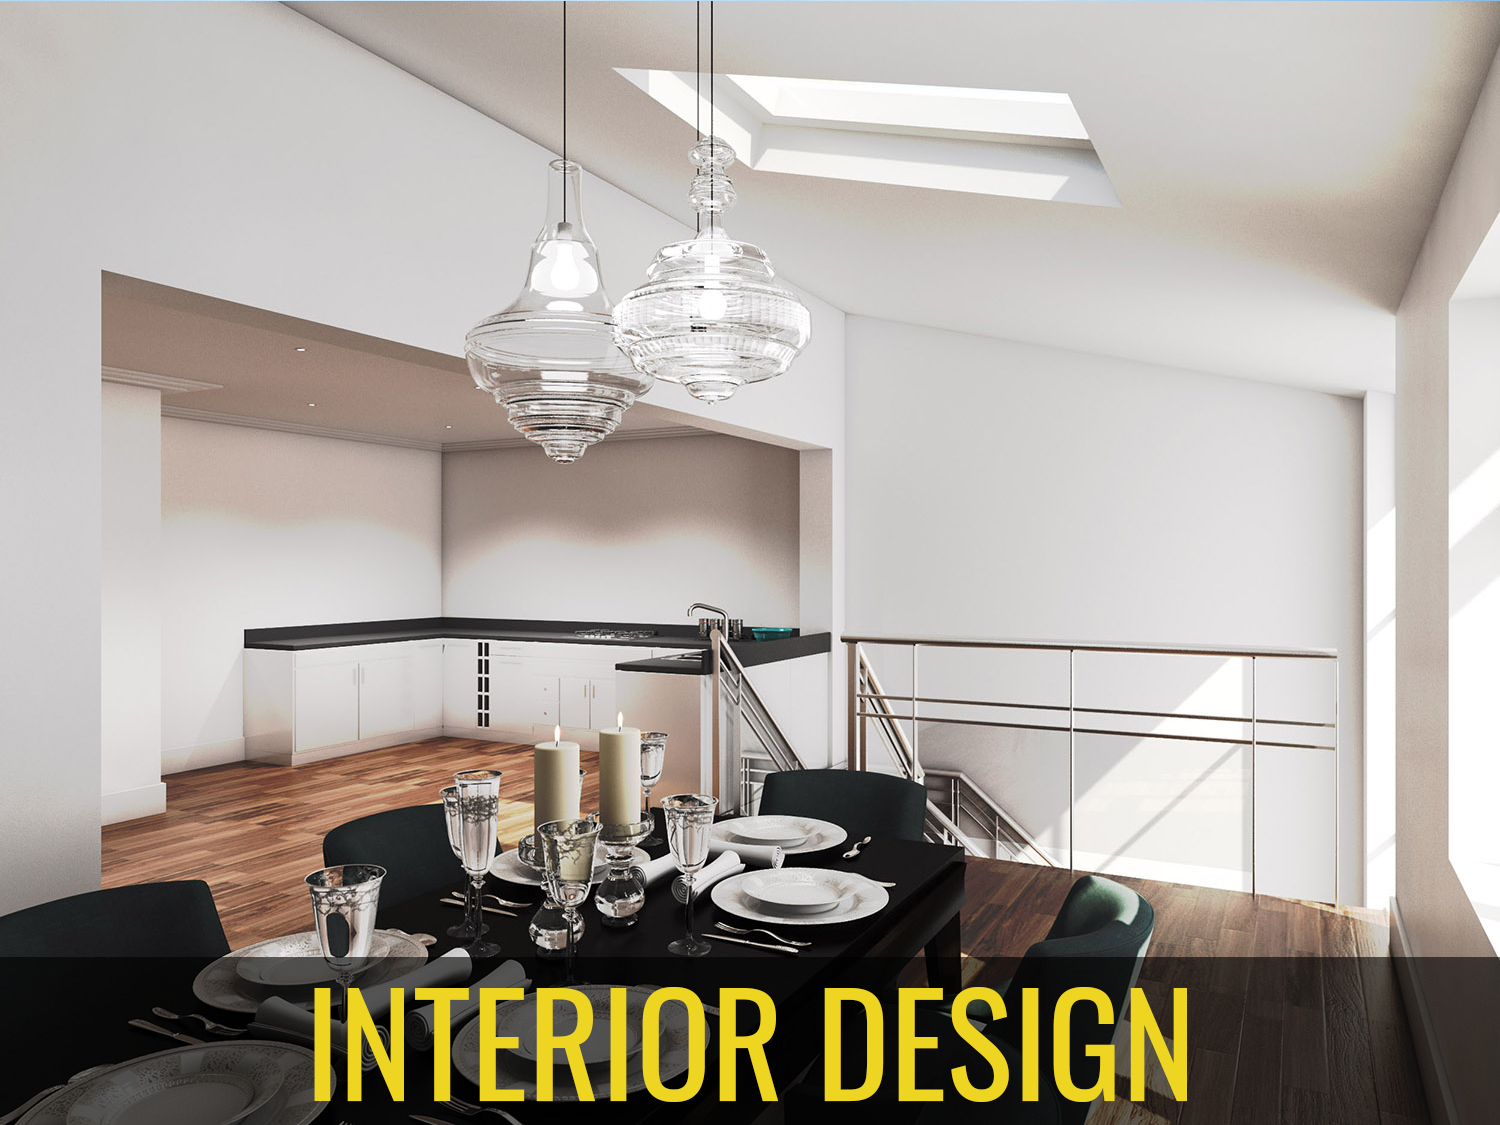 Interior Design Architects East London